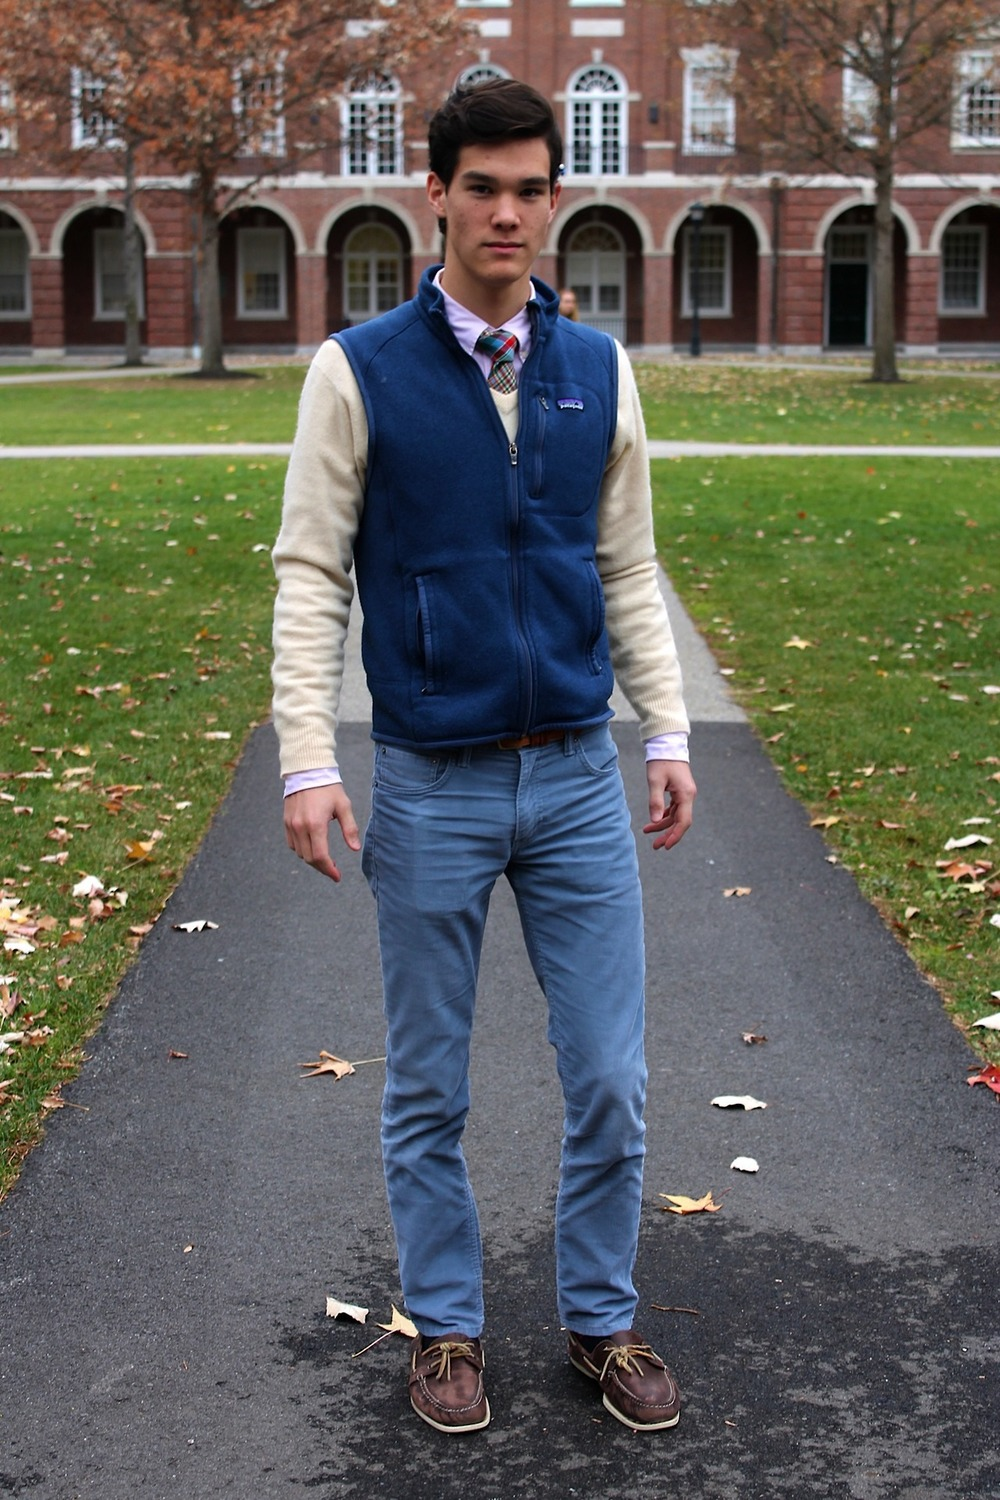 Phillips Exeter Academy - Blue Chinos in a fall layered look